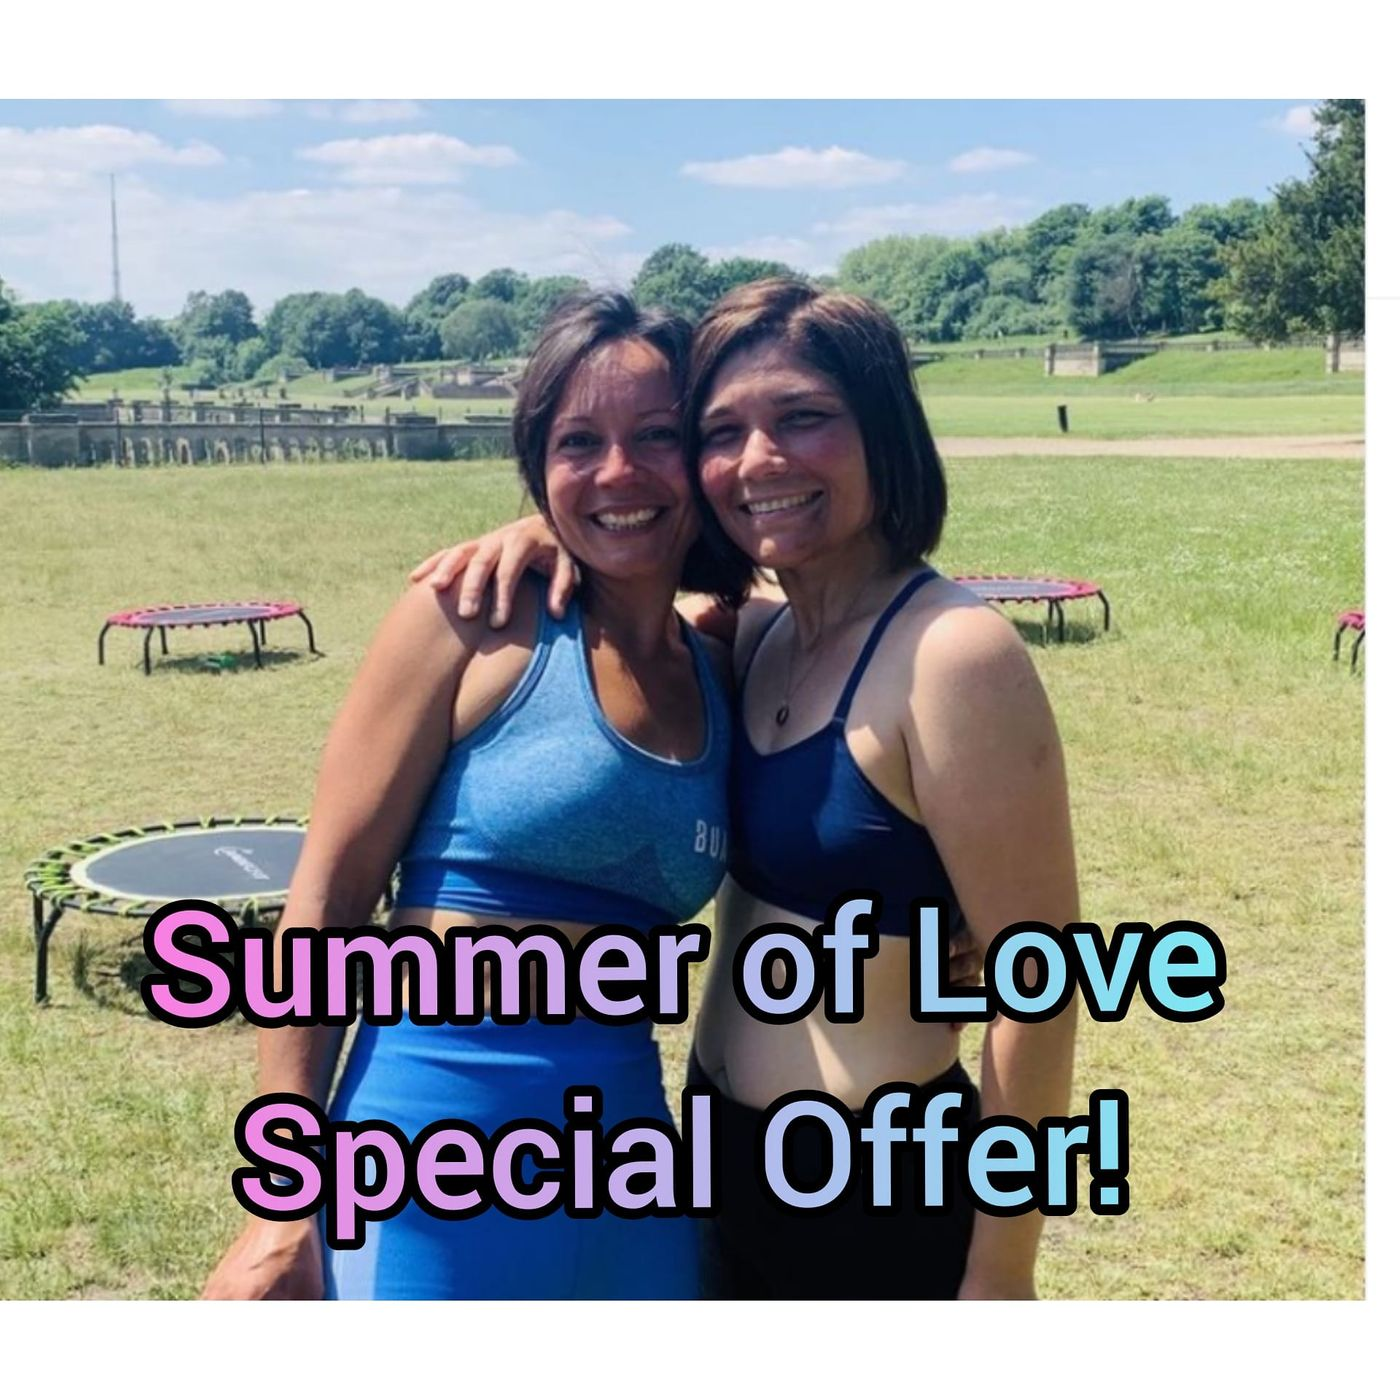 Special Offer!! Getting active with friends is one of the best ways to keep on track with good habits and hitting your fitness goals. With that in mind, until the end of August, get a FREE [Taster Pack](/u/SarahsAlternativeFitness/credits/taster-pack) for a loved one when you buy a [Regulars Pack](/u/SarahsAlternativeFitness/credits/regulars-pack) Pretty good huh?!?